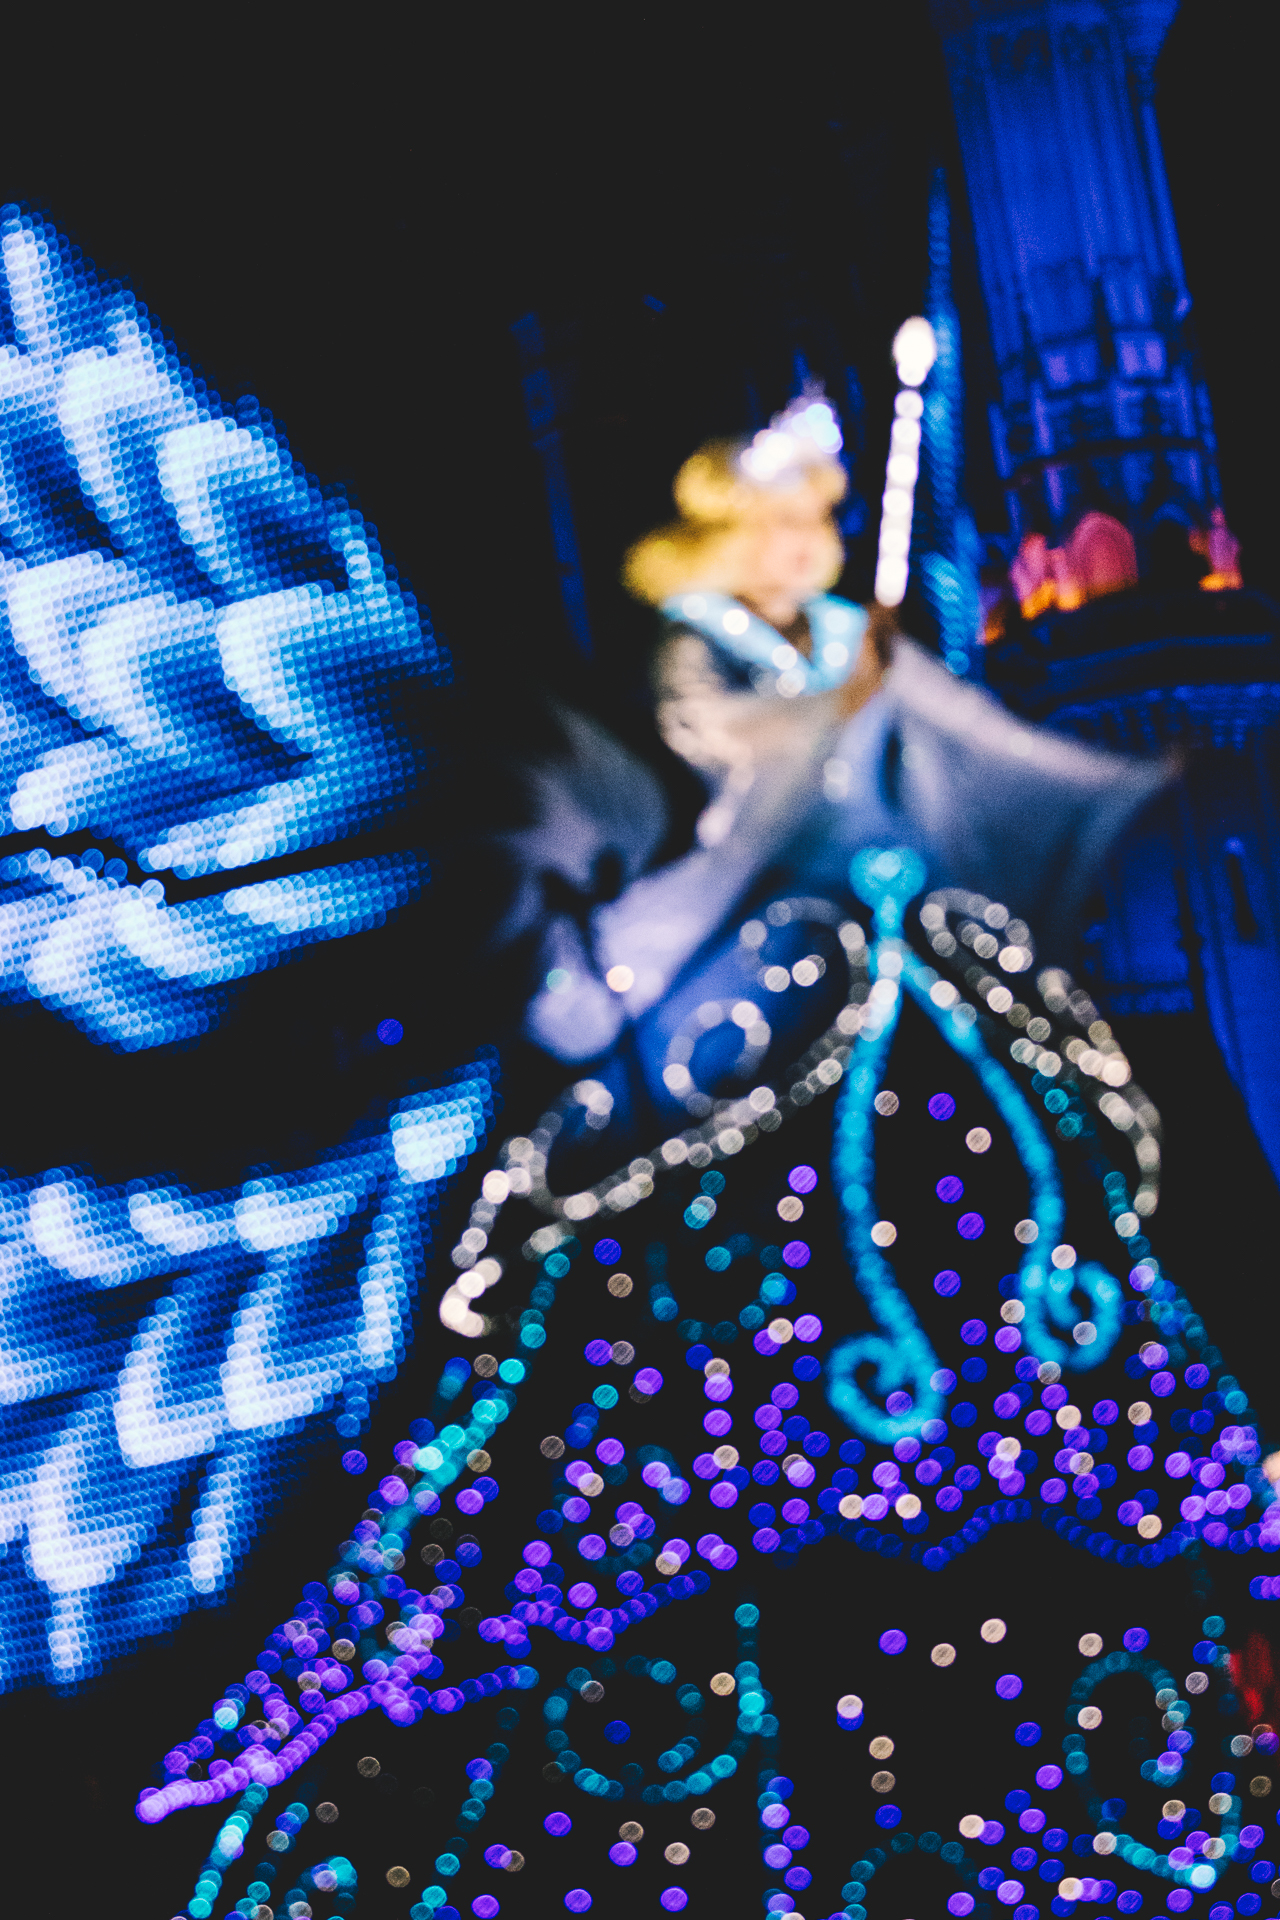 After experiencing an all-time high because of Minnie Oh! Minnie, we slowly made our way to World Bazaar for one final Dreamlights of 2017. Although we arrived about an hour before the parade's kick off, we enjoyed sitting on a bench and people watching.